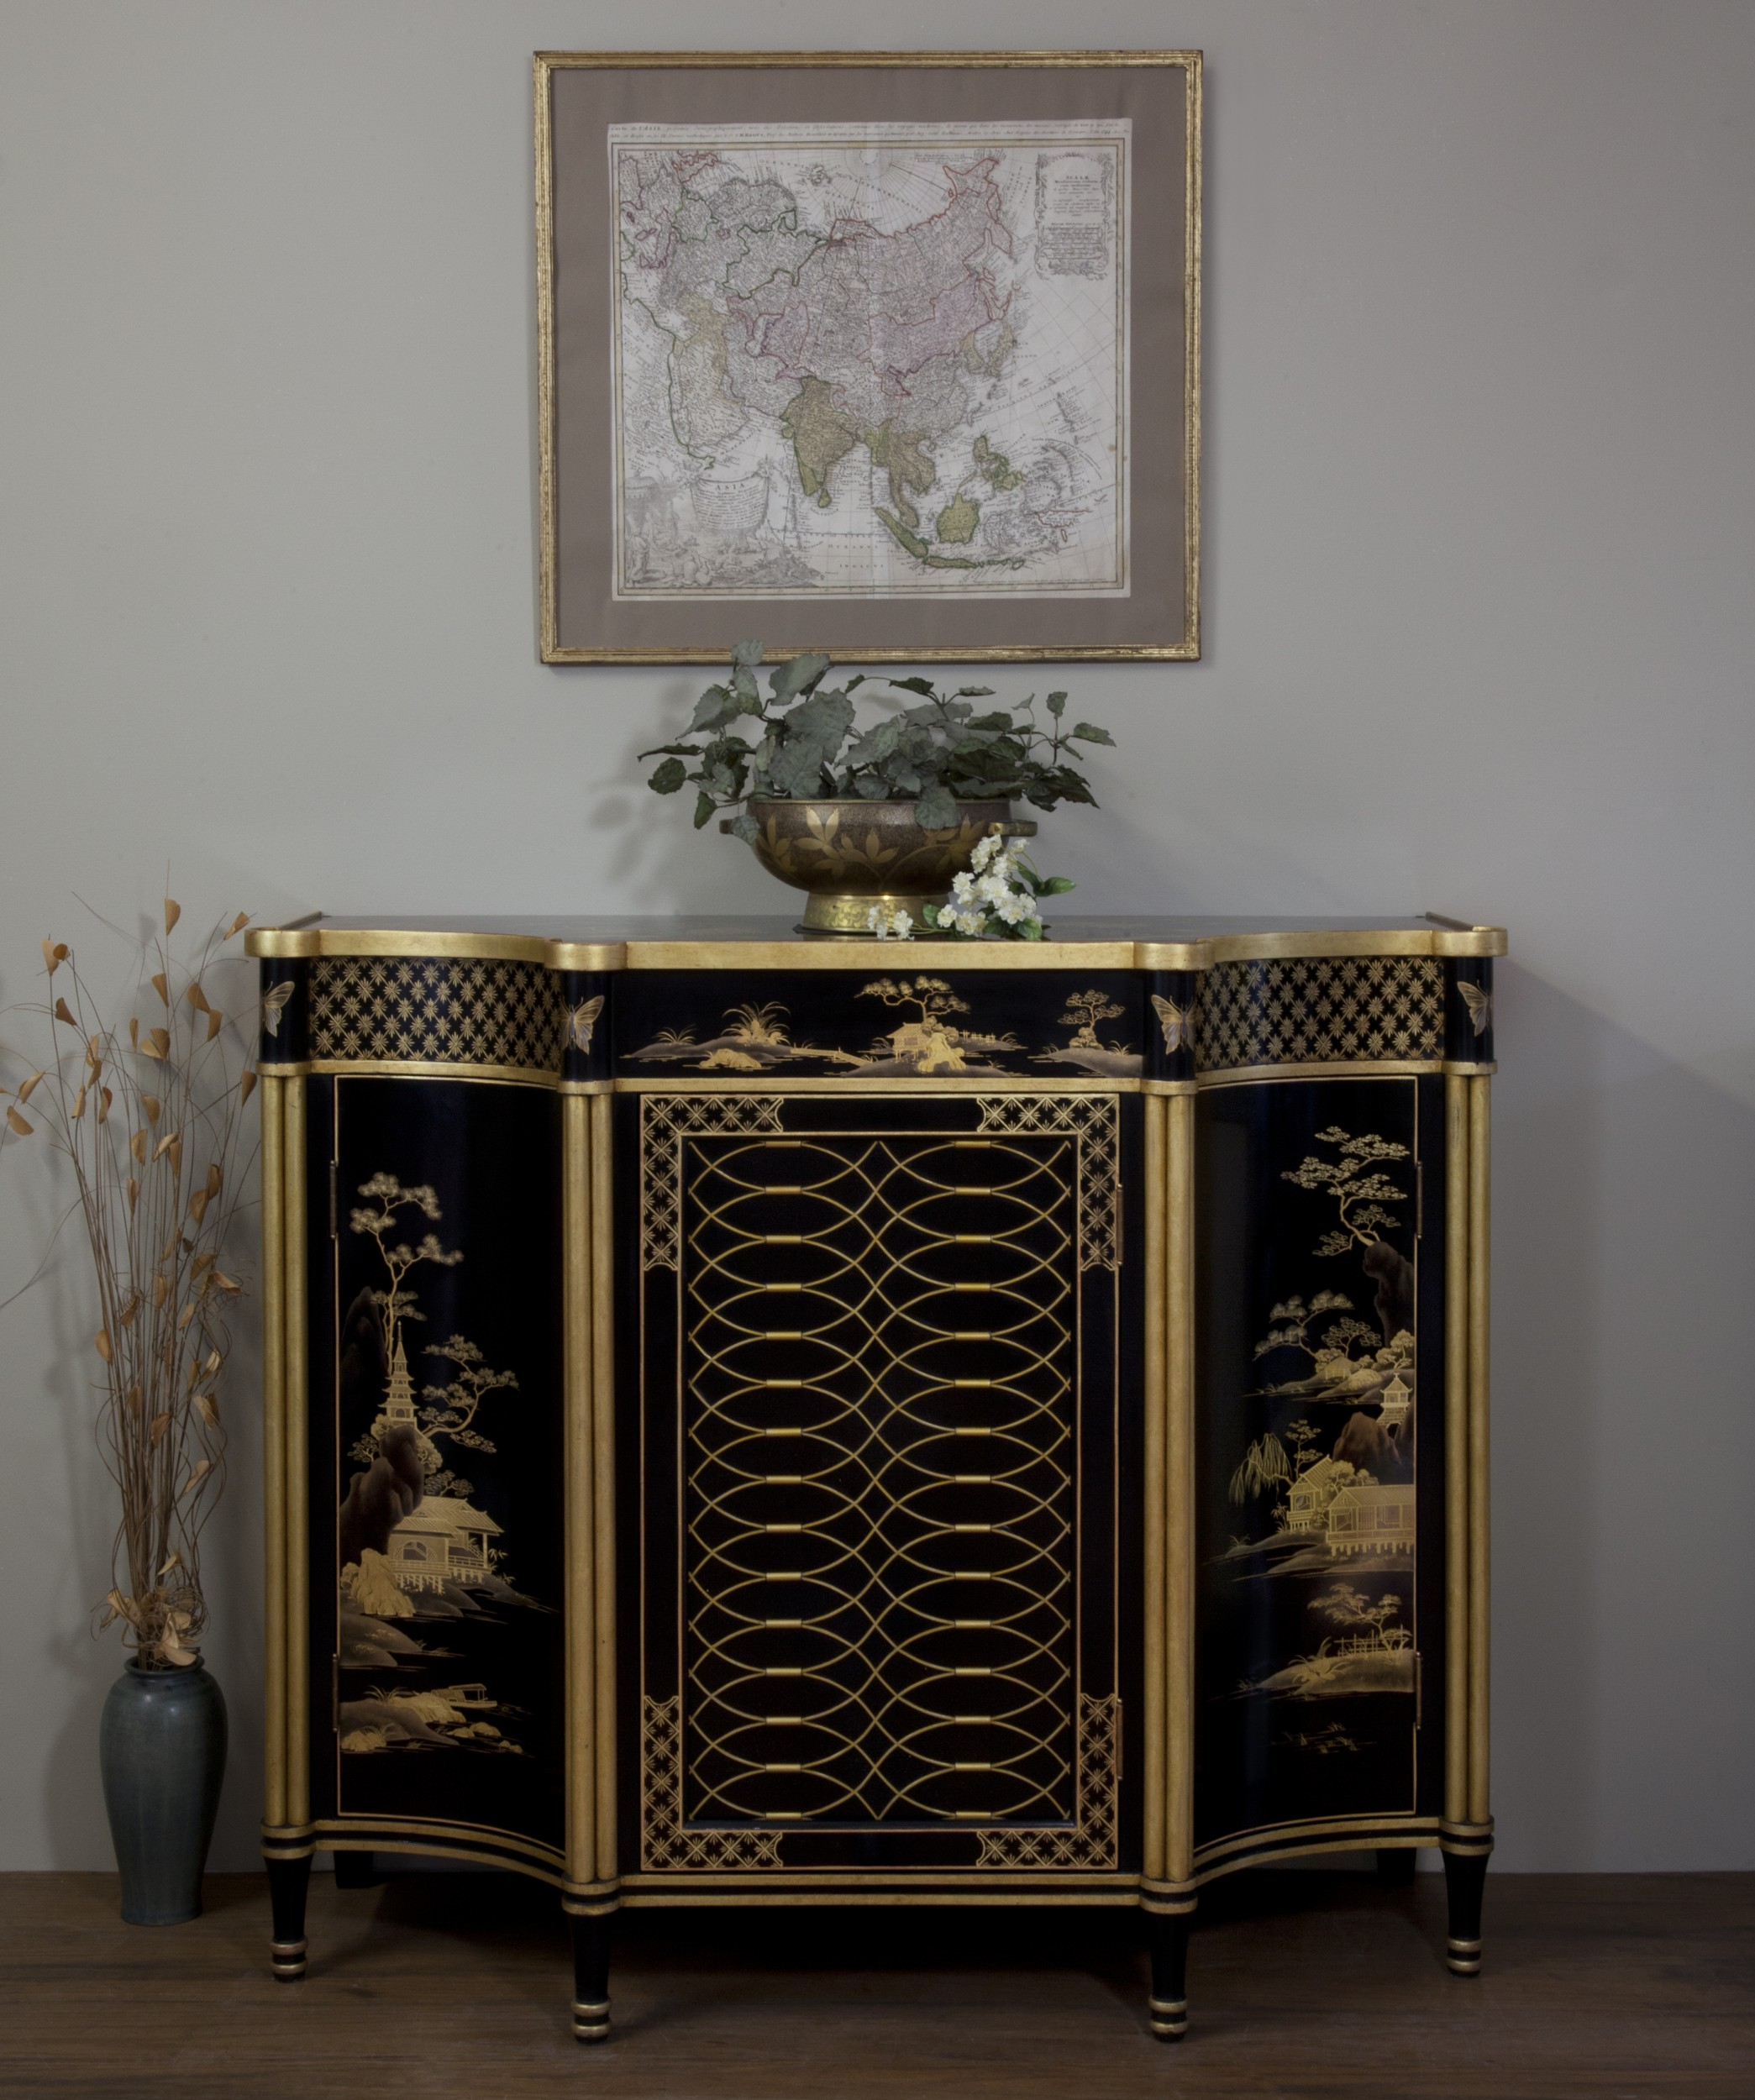 Regency Lacquer Cabinet